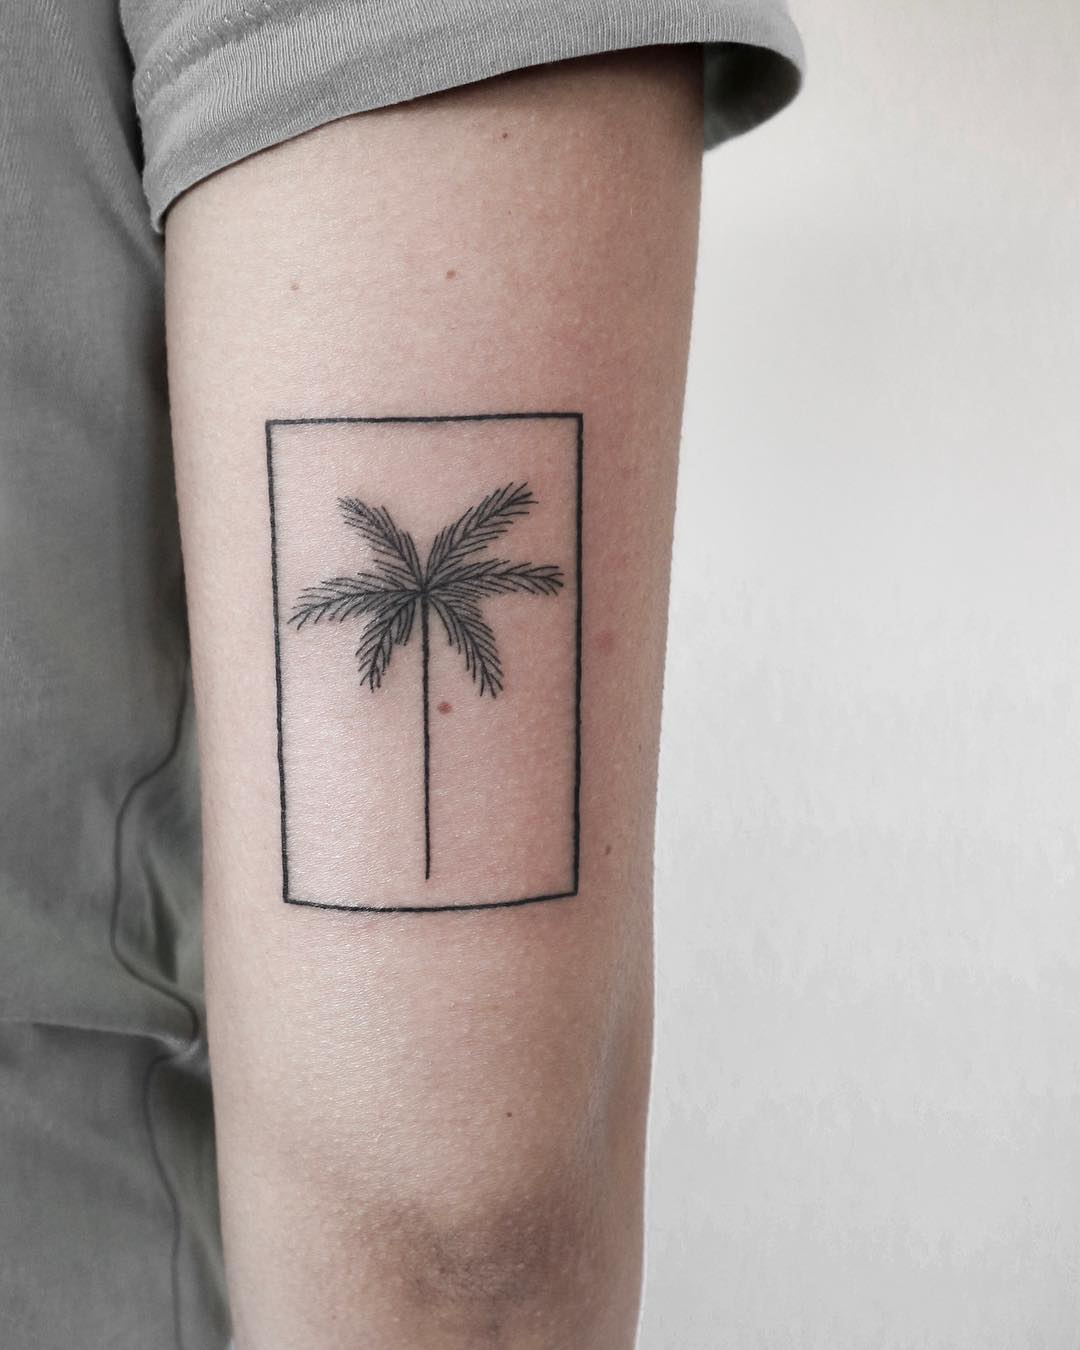 A palm in a frame tattoo by Ann Gilberg